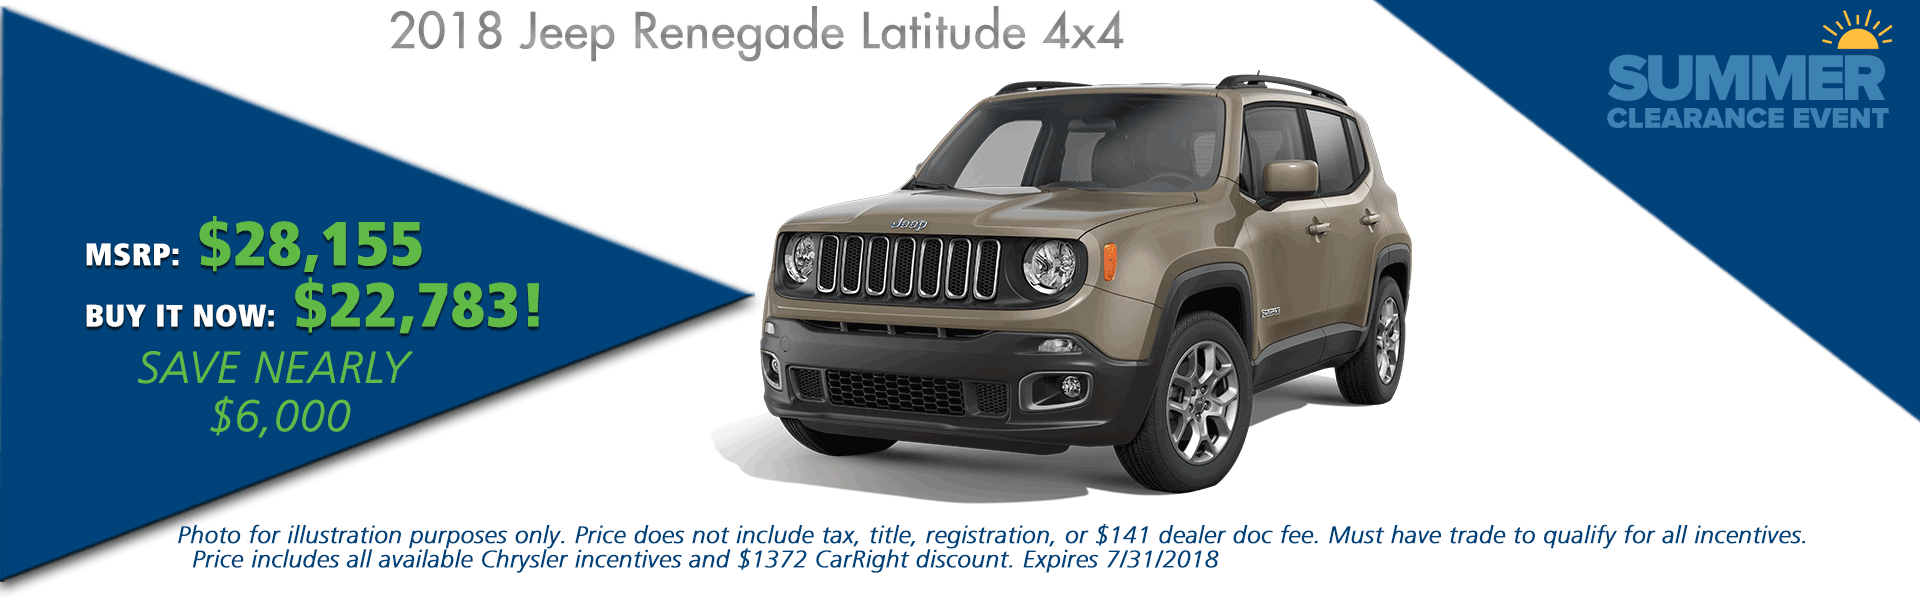 CarRight Auto Moon Township PA Chrysler Dodge Jeep Ram NEW 2018 JEEP RENEGADE LATITUDE 4X4